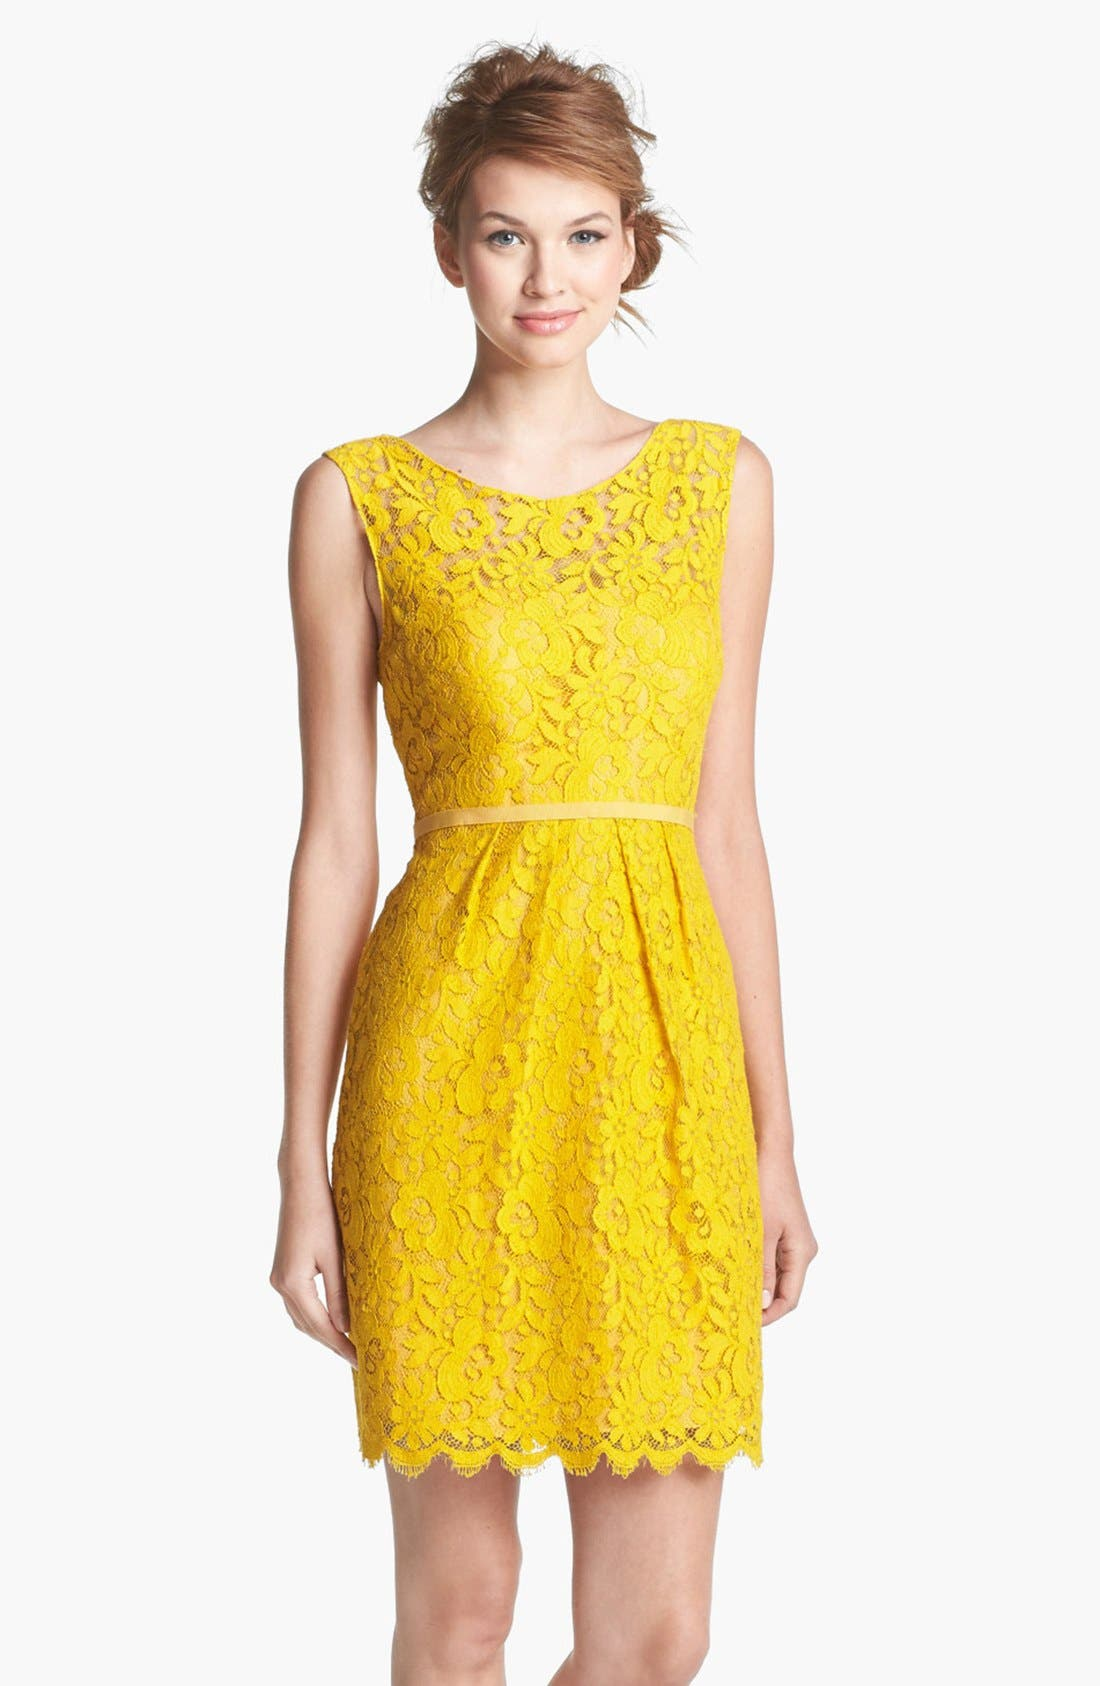 Alternate Image 1 Selected - Jenny Yoo 'Harlow' Tea Lace Sheath Dress (Online Only)